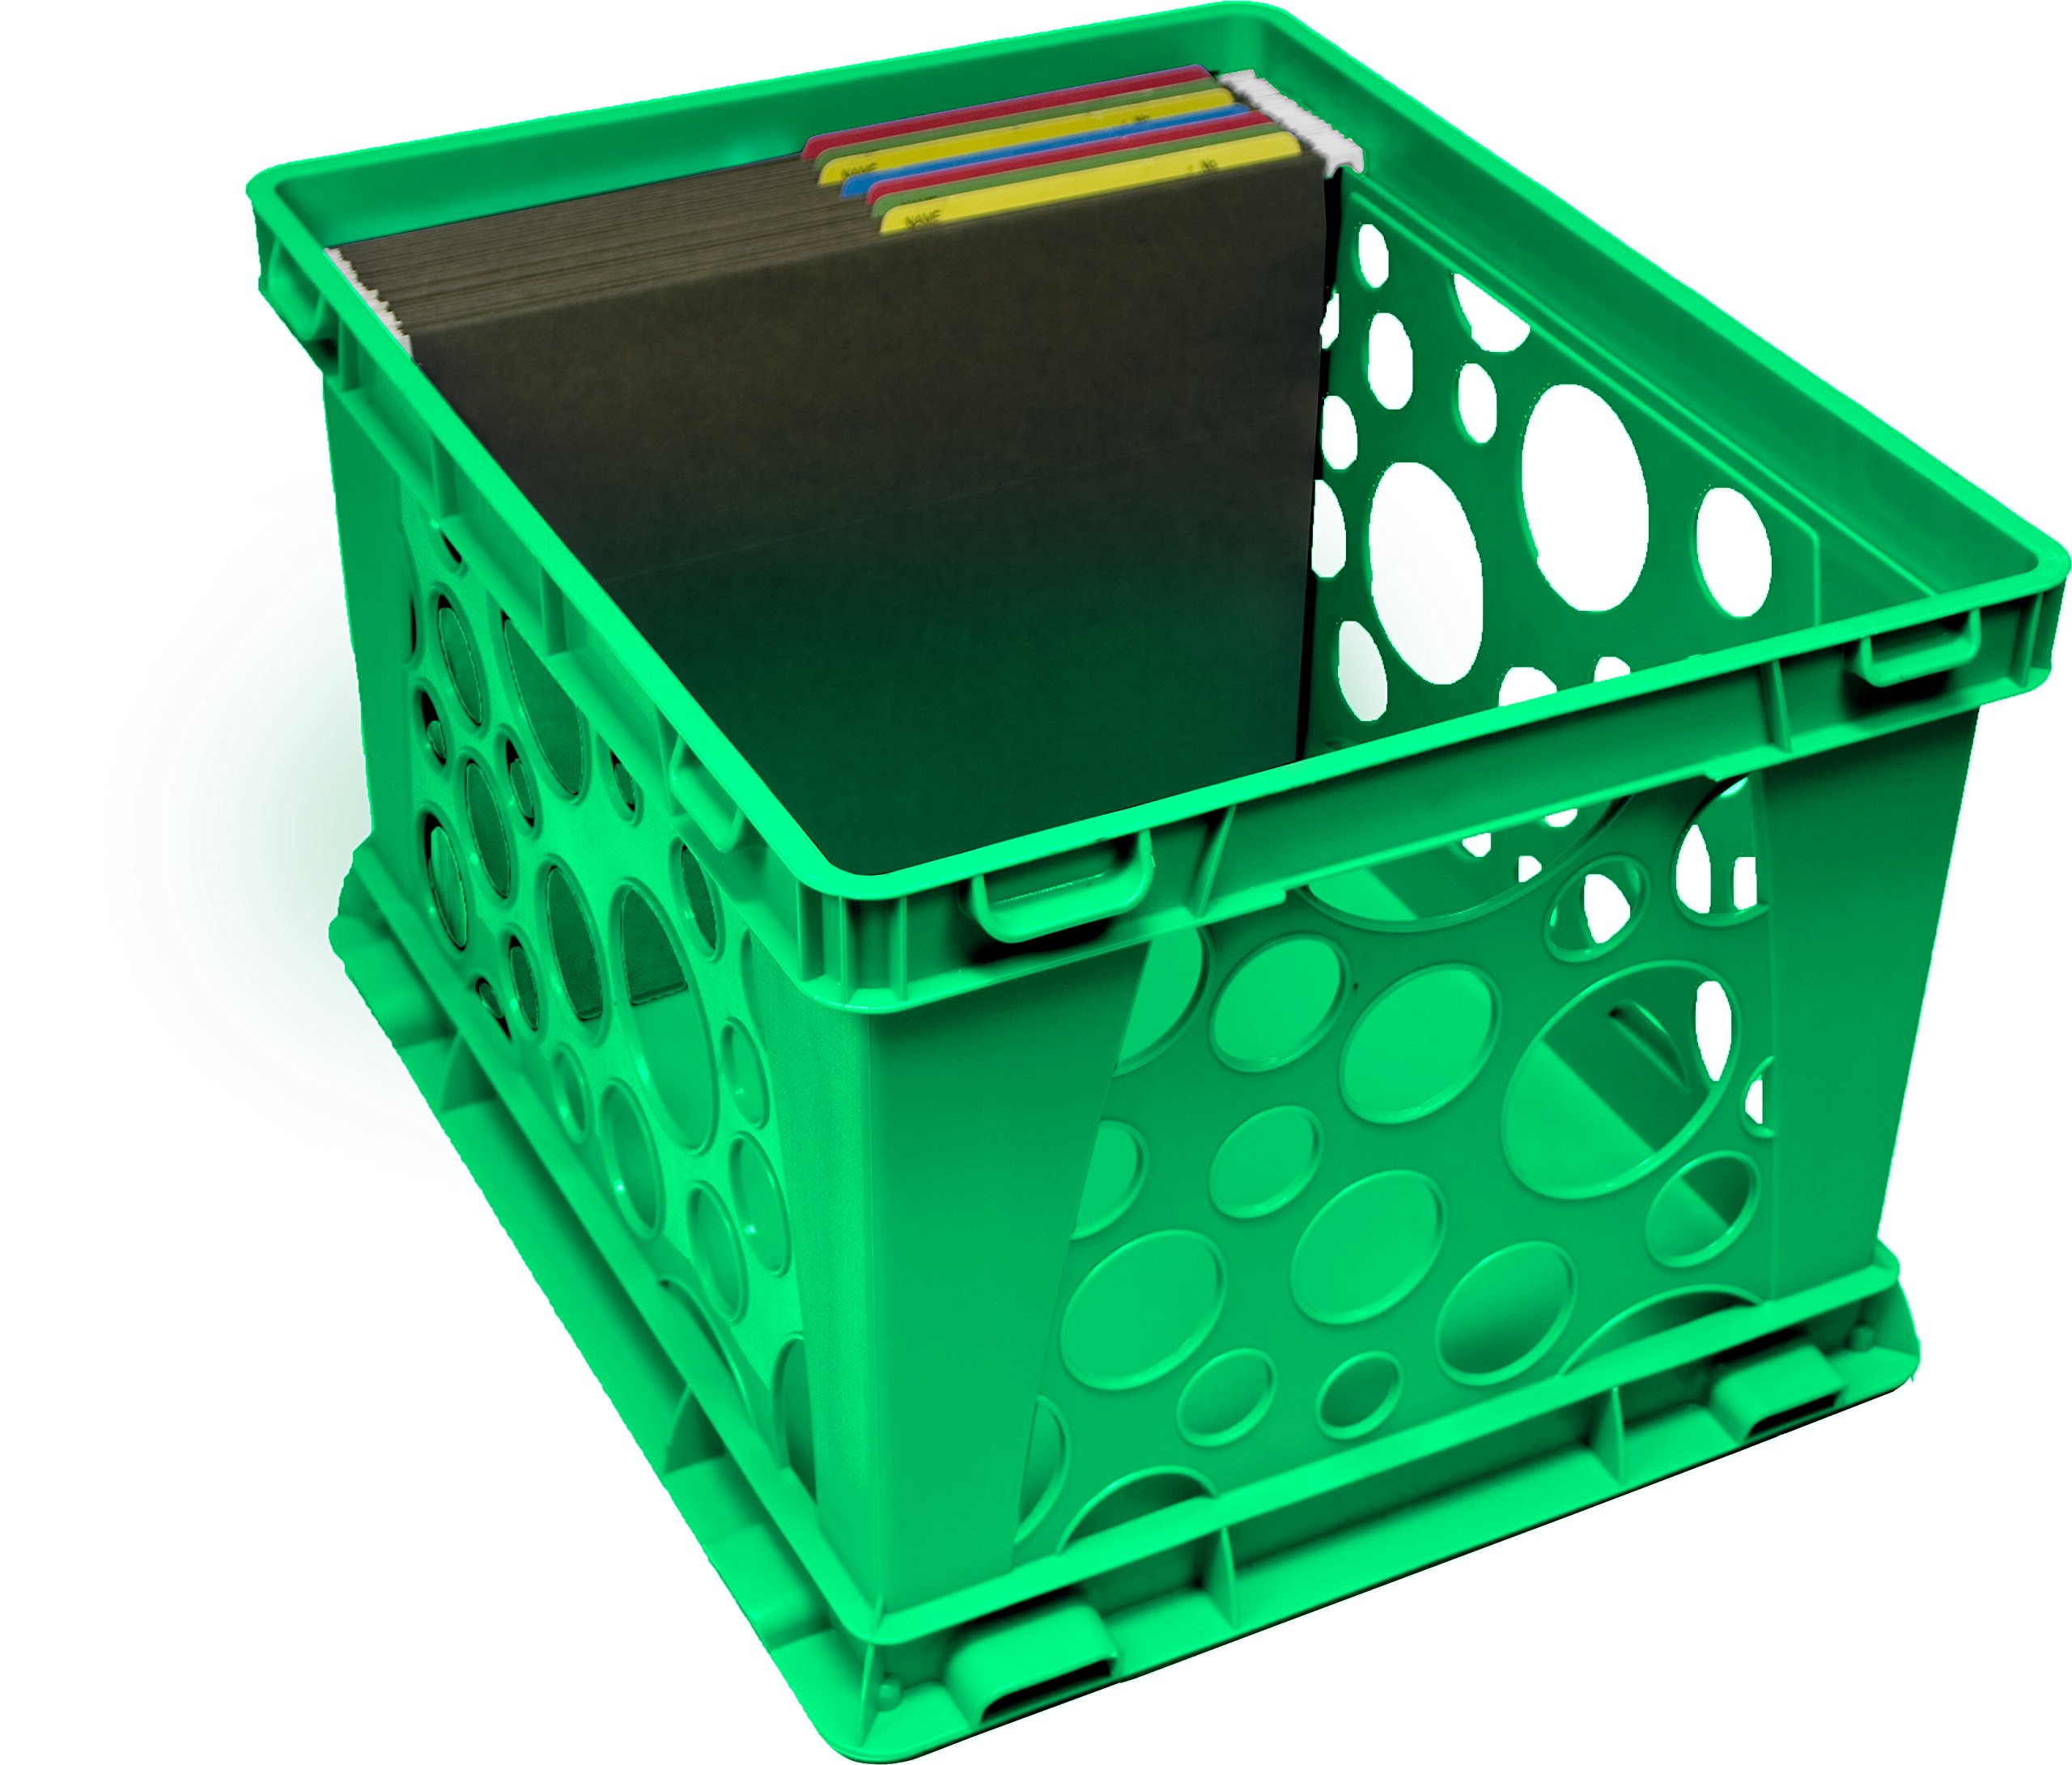 Storex Large Storage and Transport File Crate, 17.25 x 14.25 x 10.5 Inches, Green, Case of 3 (STX61556U03C) by Storex (Image #2)